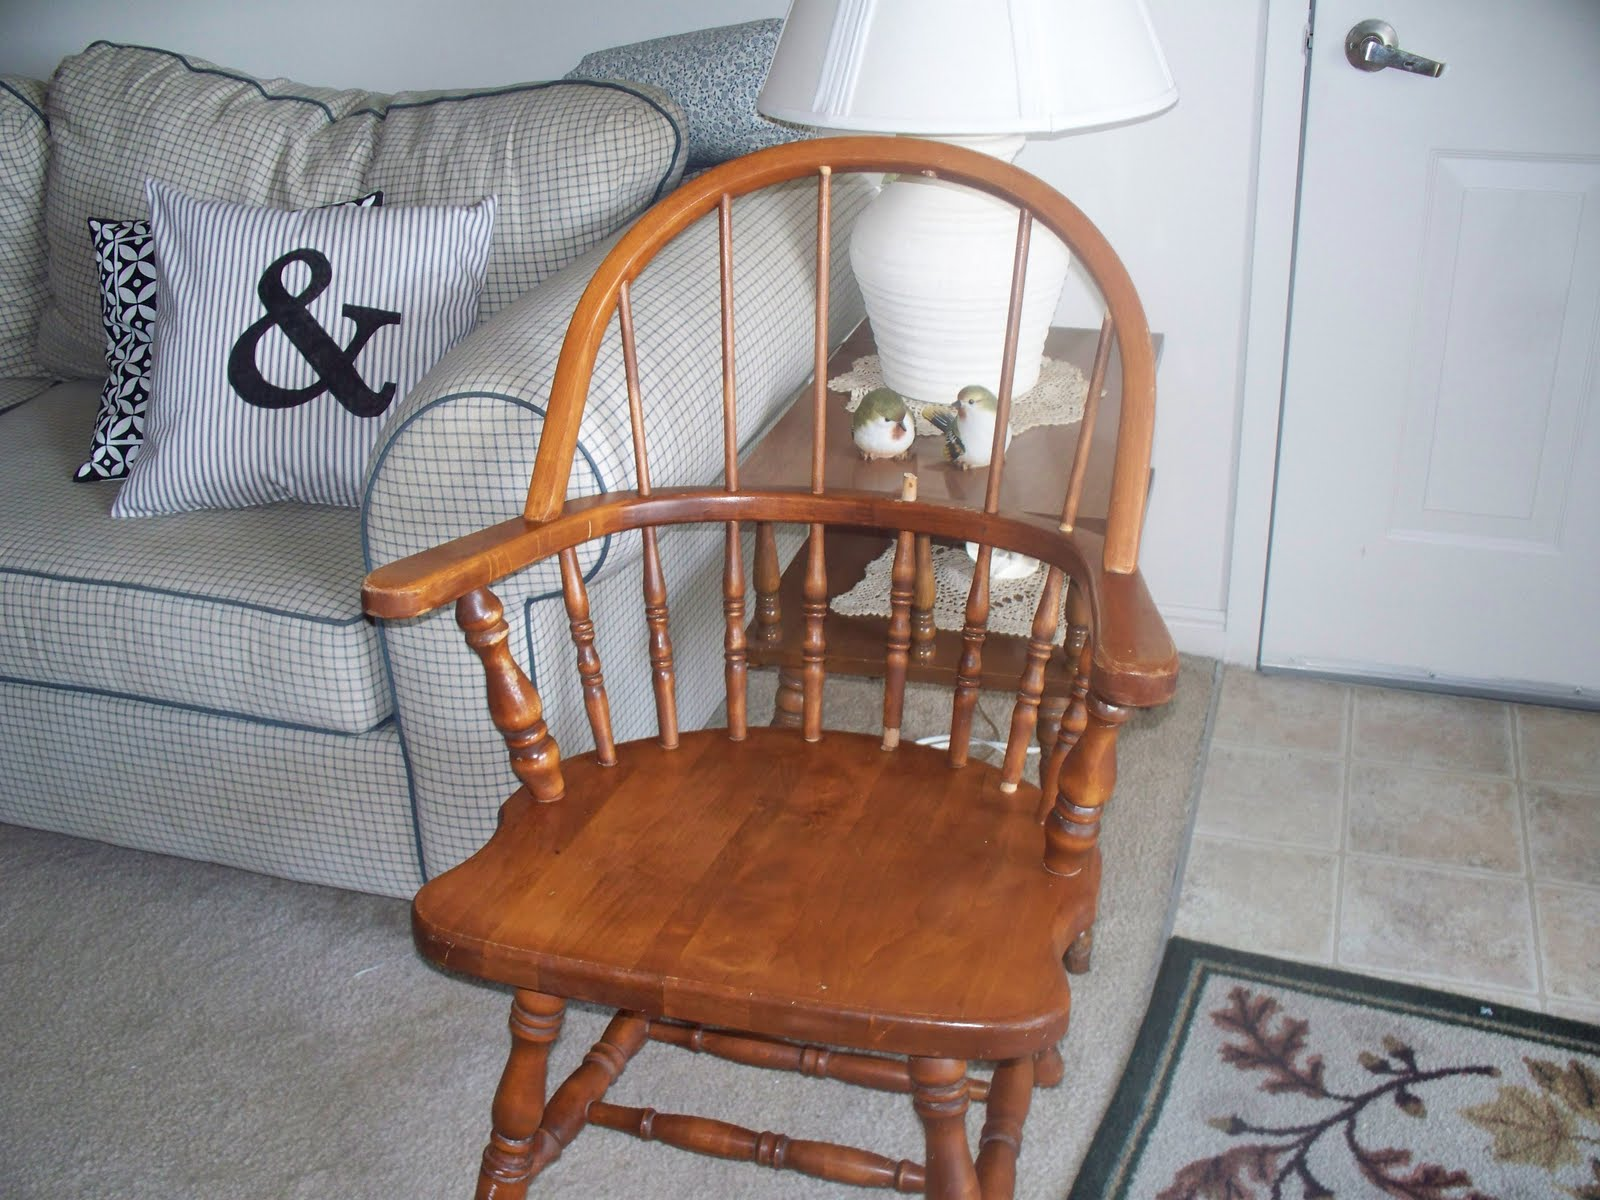 Early American Style Chairs Early American Bedroom Furniturecolonial Style Furniture Writing